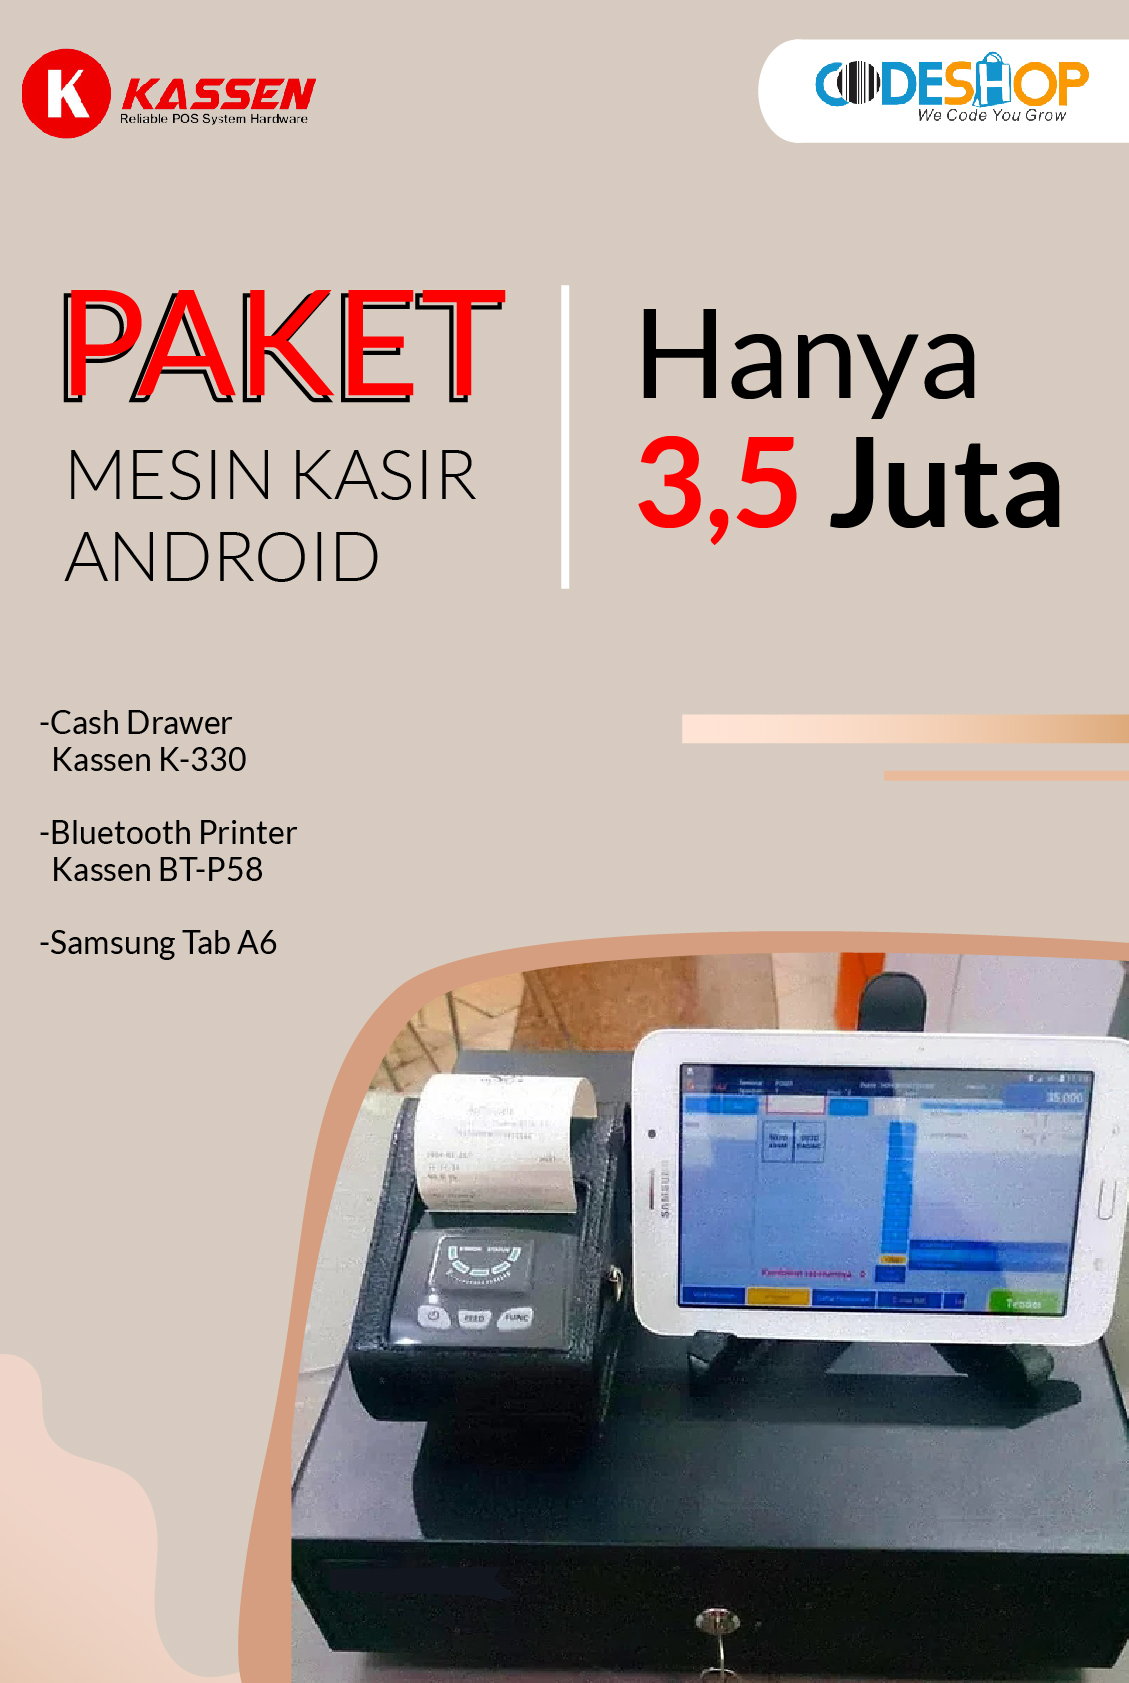 Codesoft TCP I500 (POS All In One)